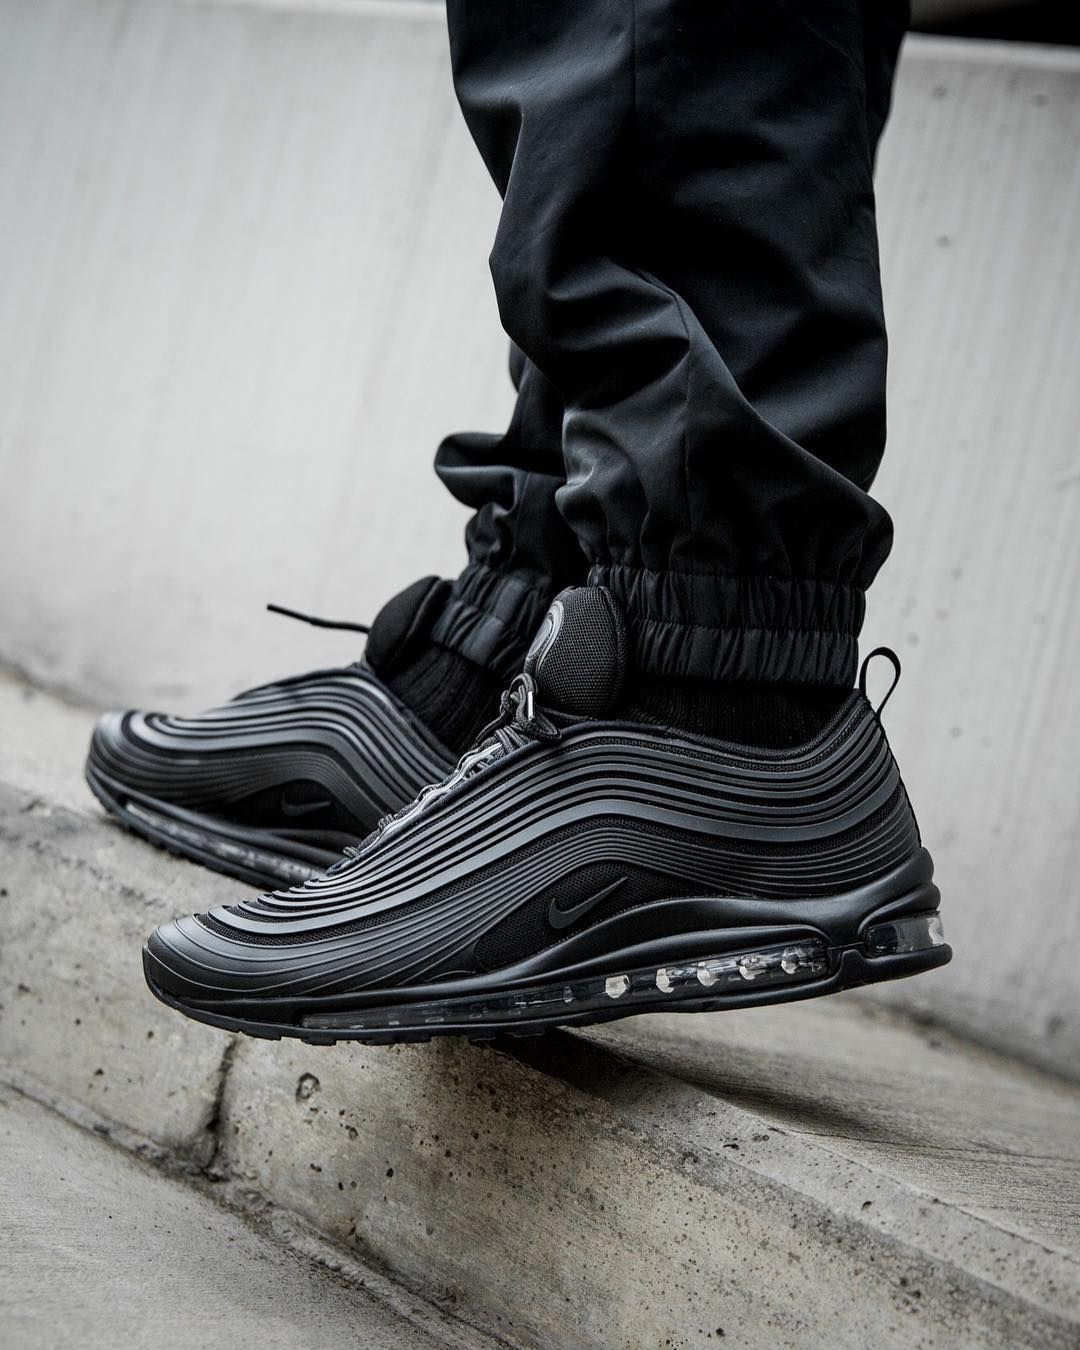 Nike Air Max 97 Ultra `17 Premium | Nike air max, Air max 97